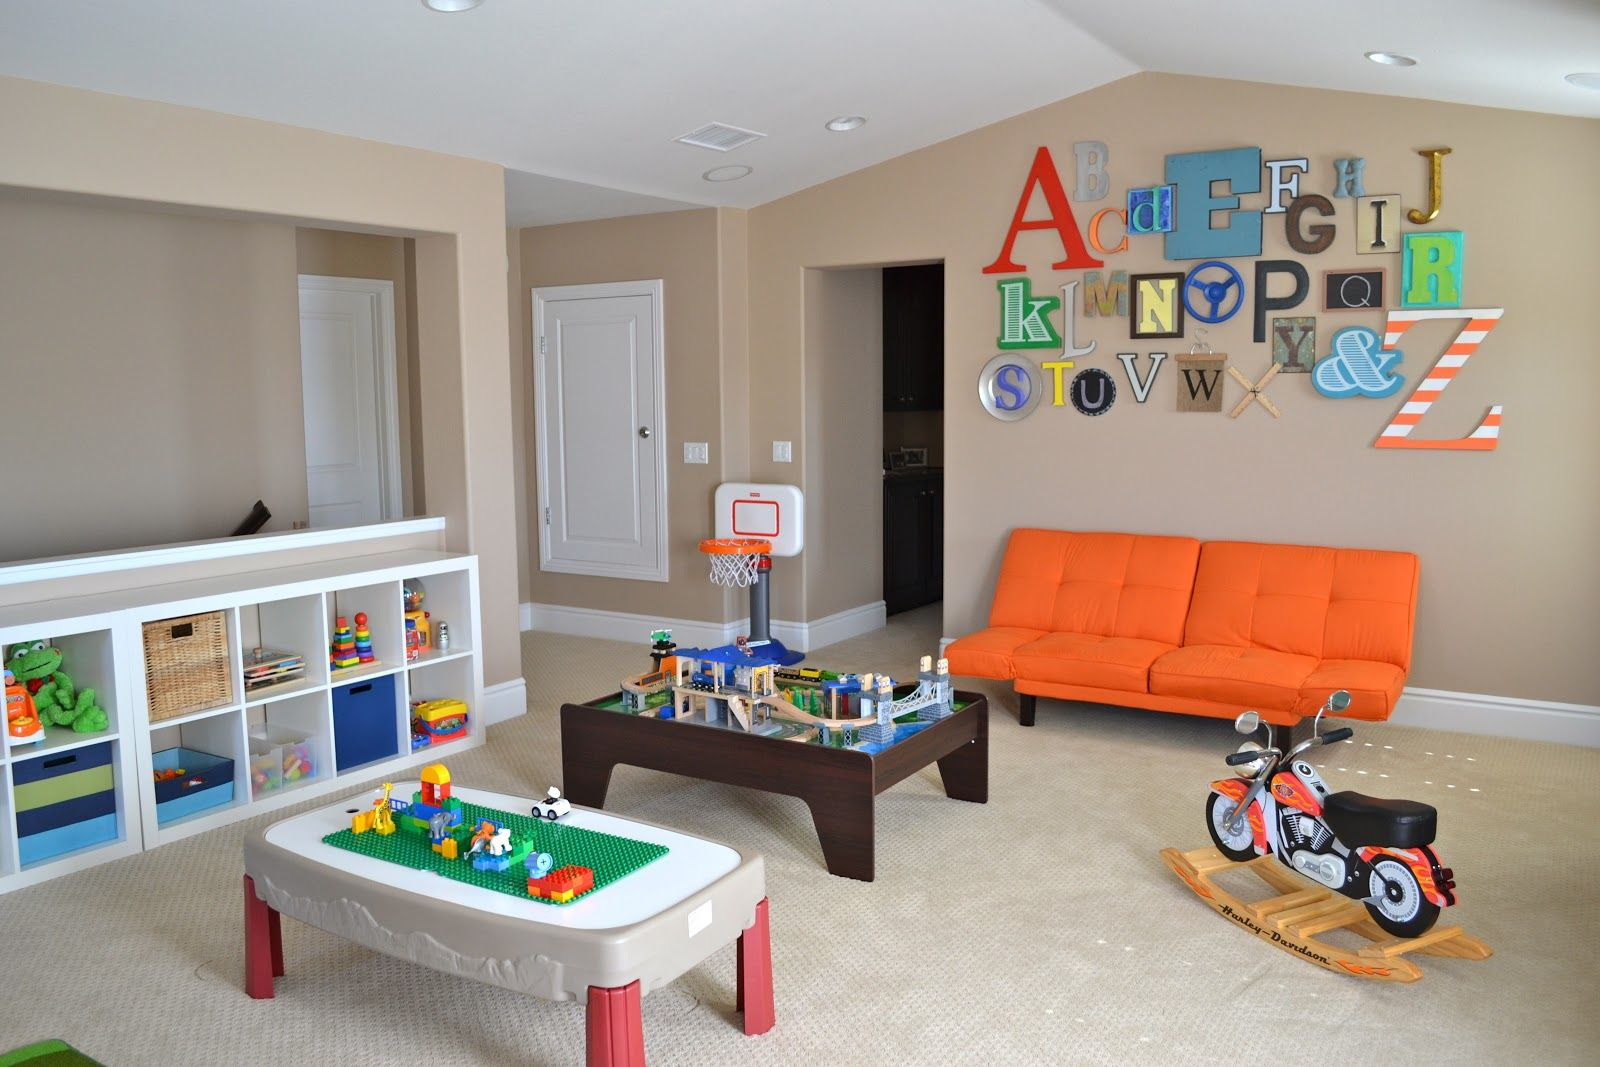 Design Playroom Seating unisex playroom ideas google search kiddos pinterest playrooms paint and room